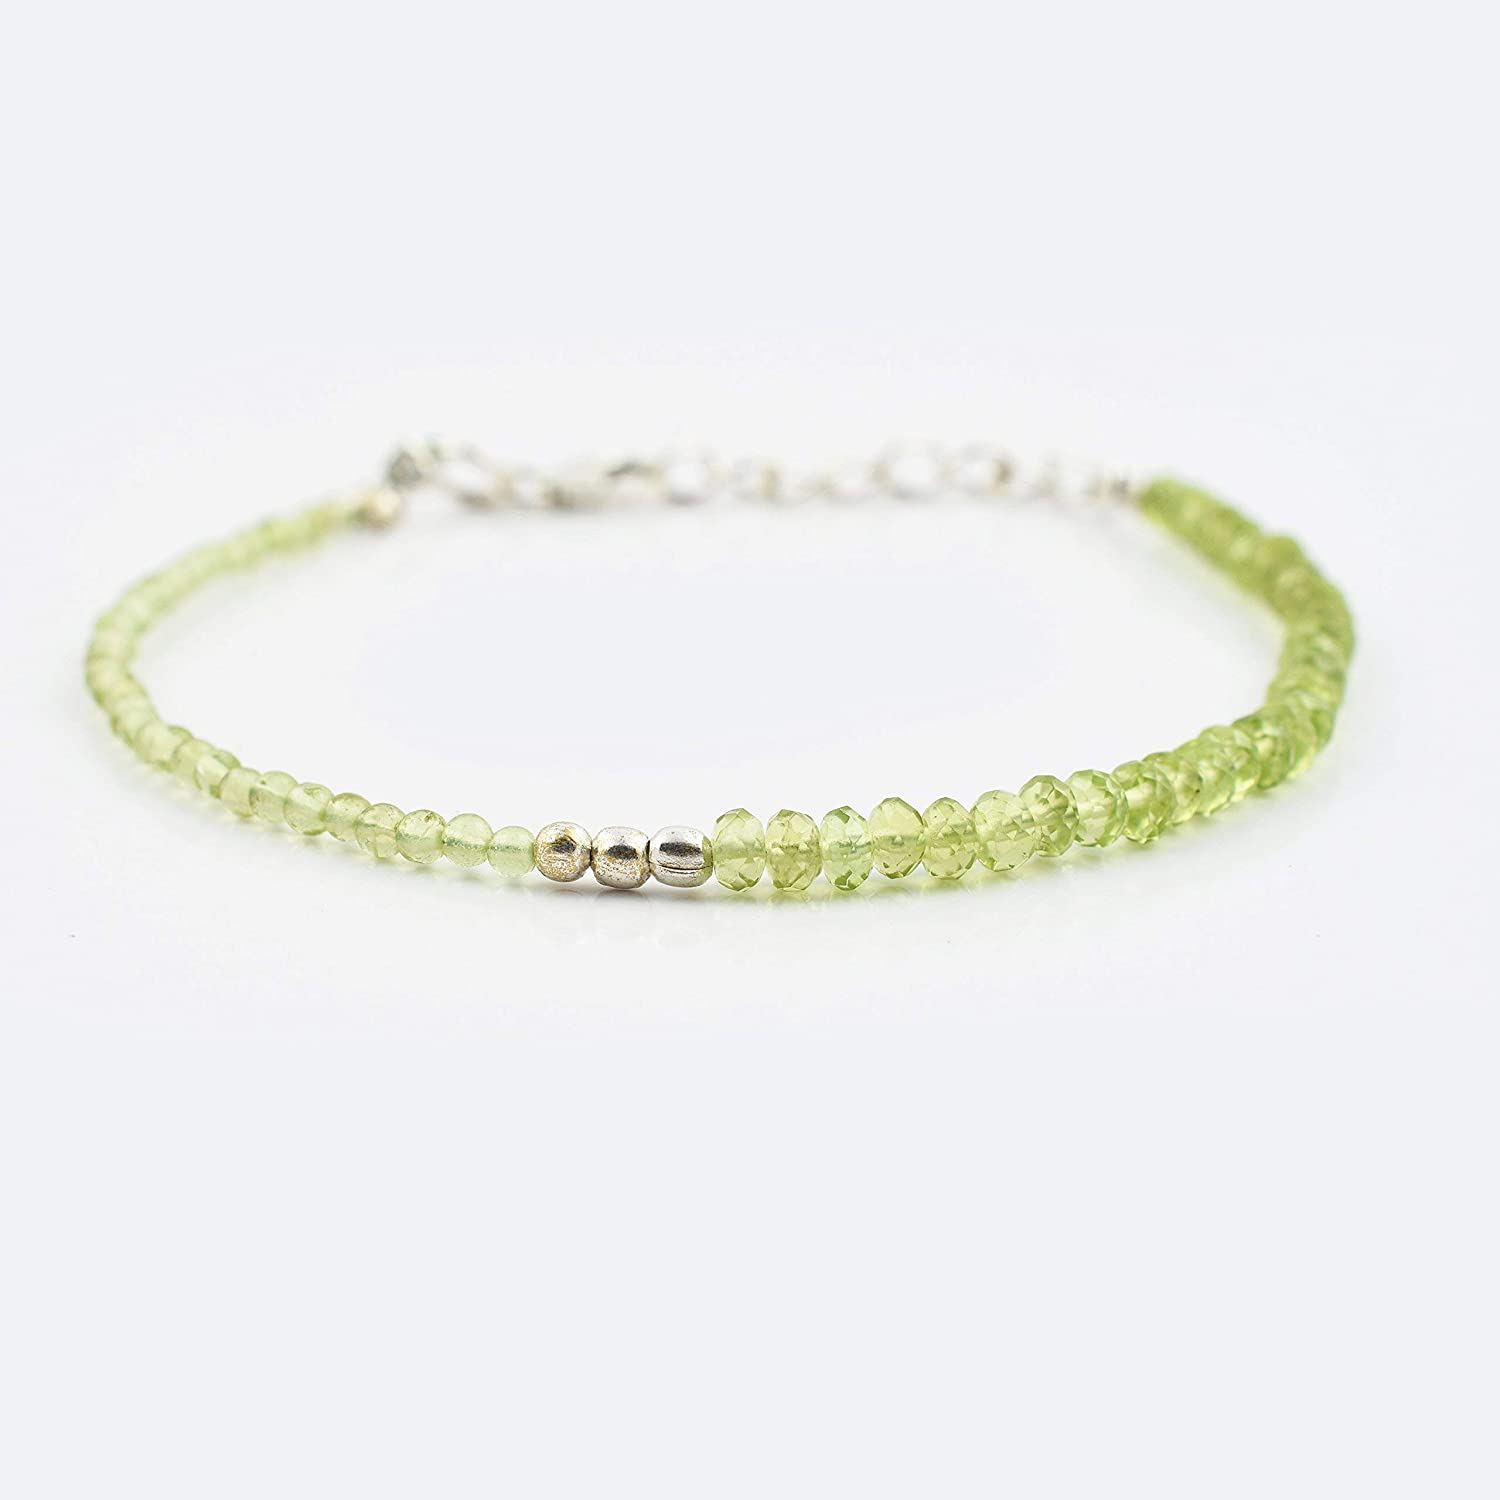 Peridot Rondelle Round Beads Bracelet with Sterling Silver finding 6.50' Gemstone Birthstone jewelry